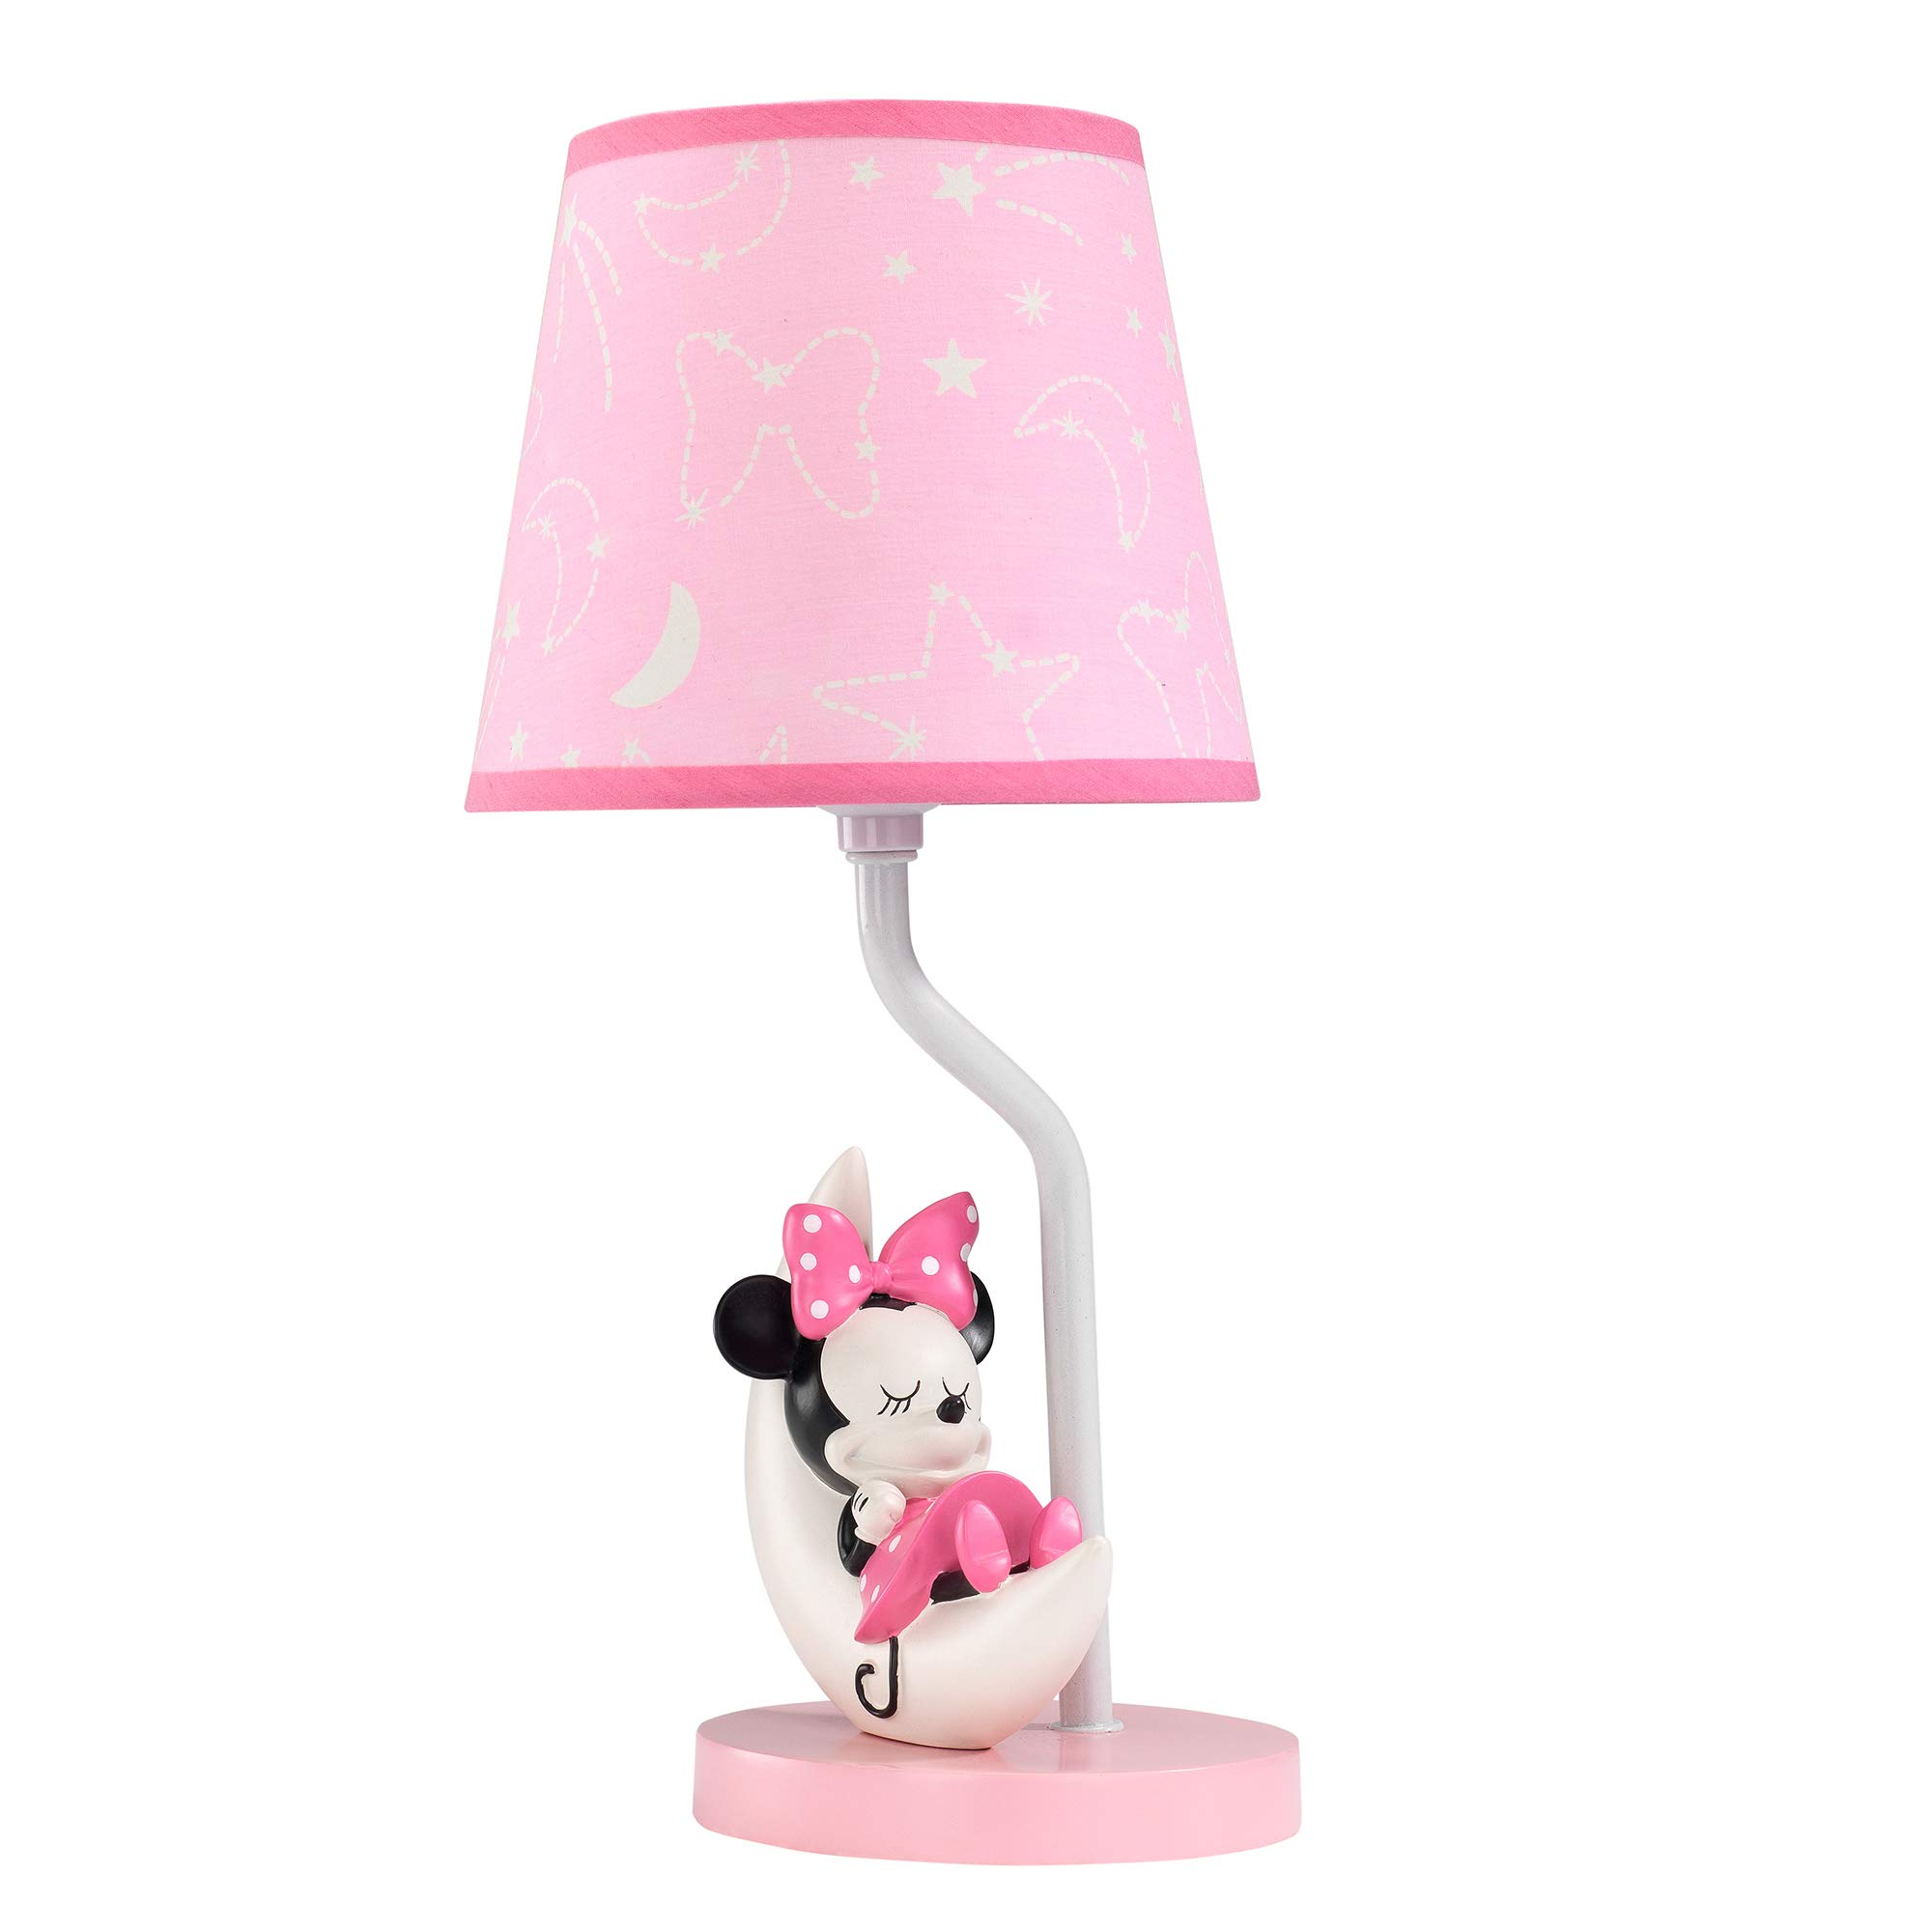 Lambs & Ivy Disney Baby Minnie Mouse Celestial Lamp with Shade & Bulb, Pink by Lambs & Ivy